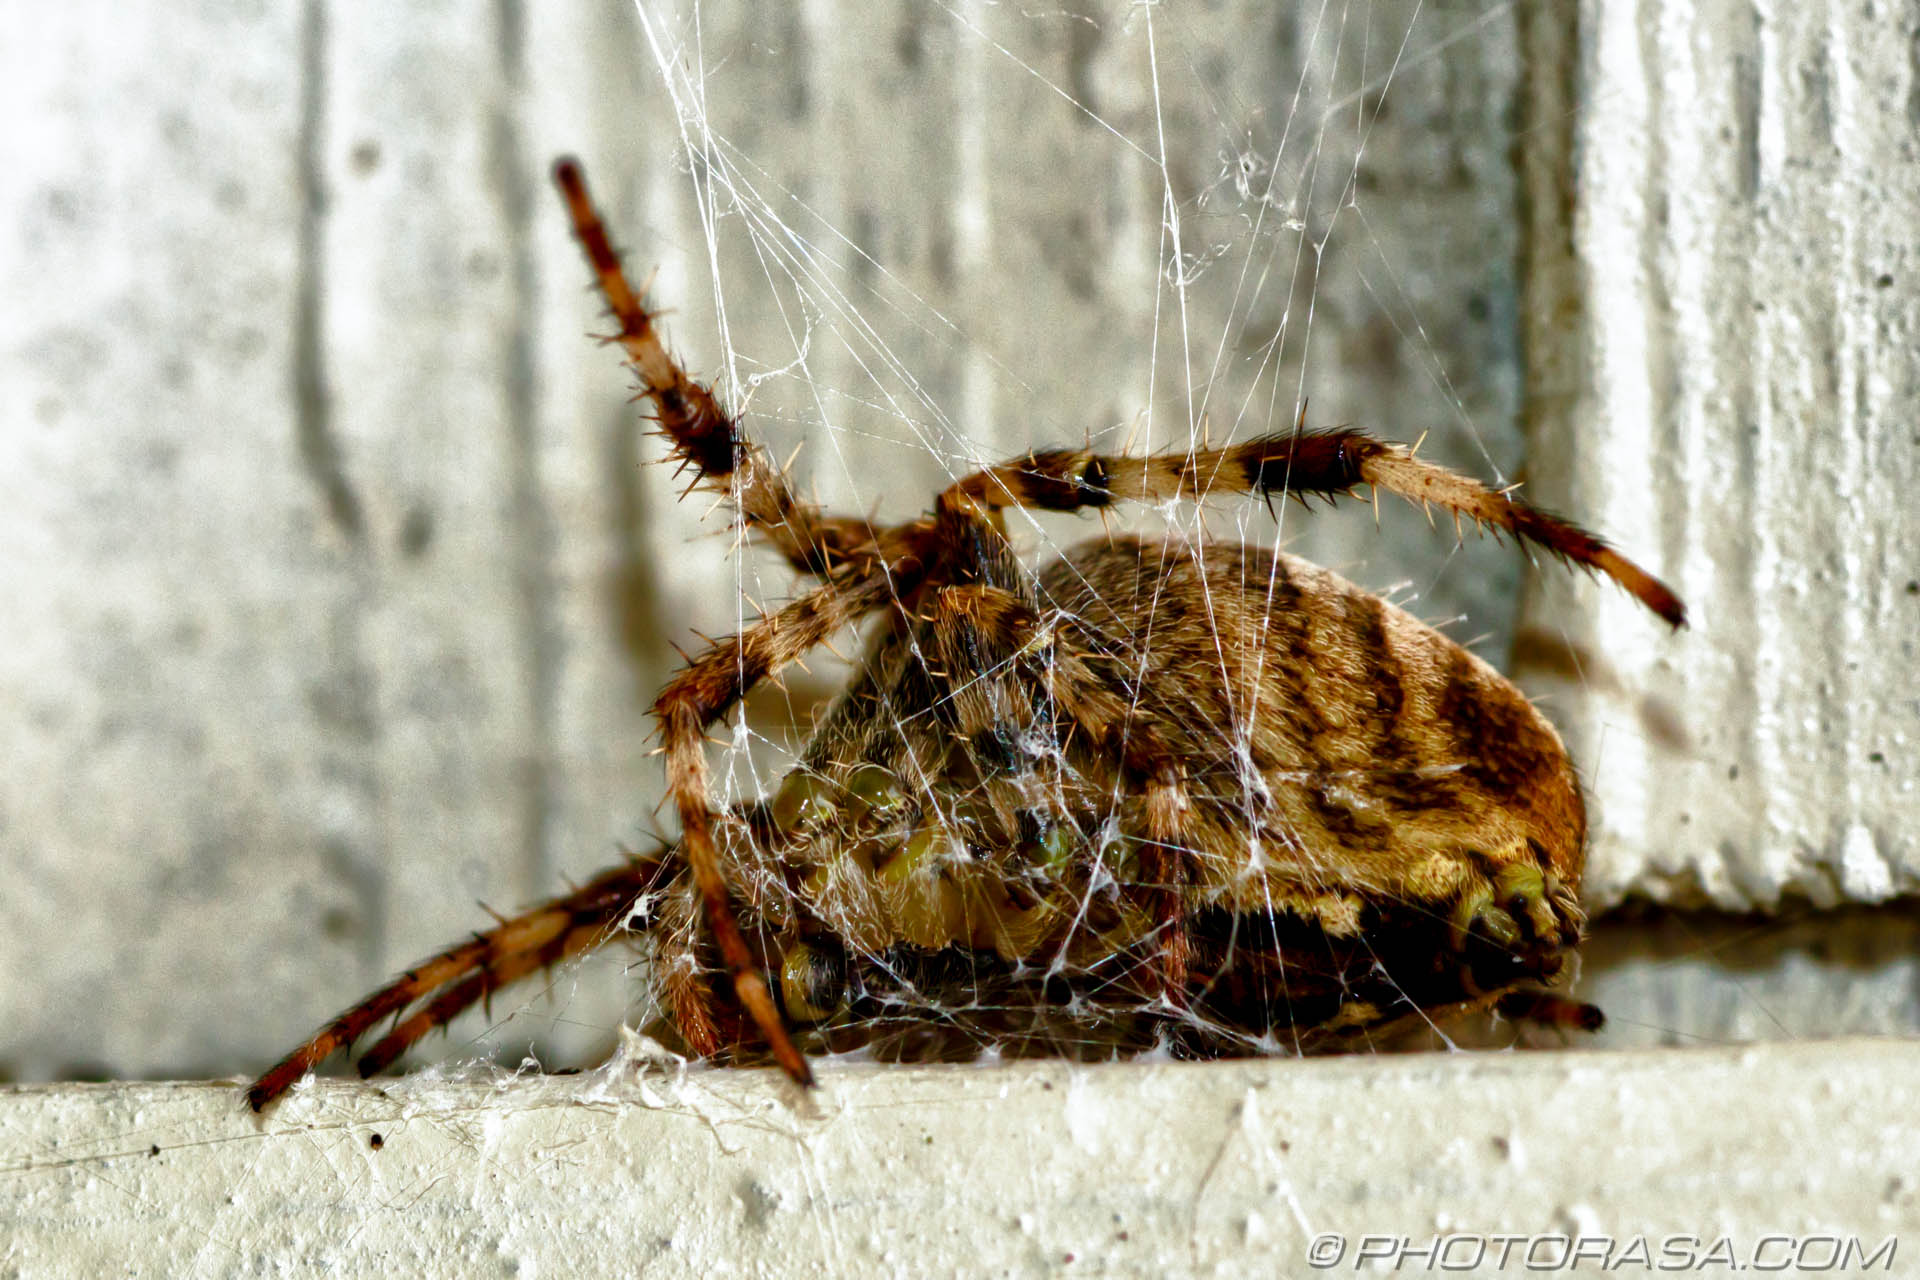 http://photorasa.com/garden-spiders/awkward-badly-positioned-legs/